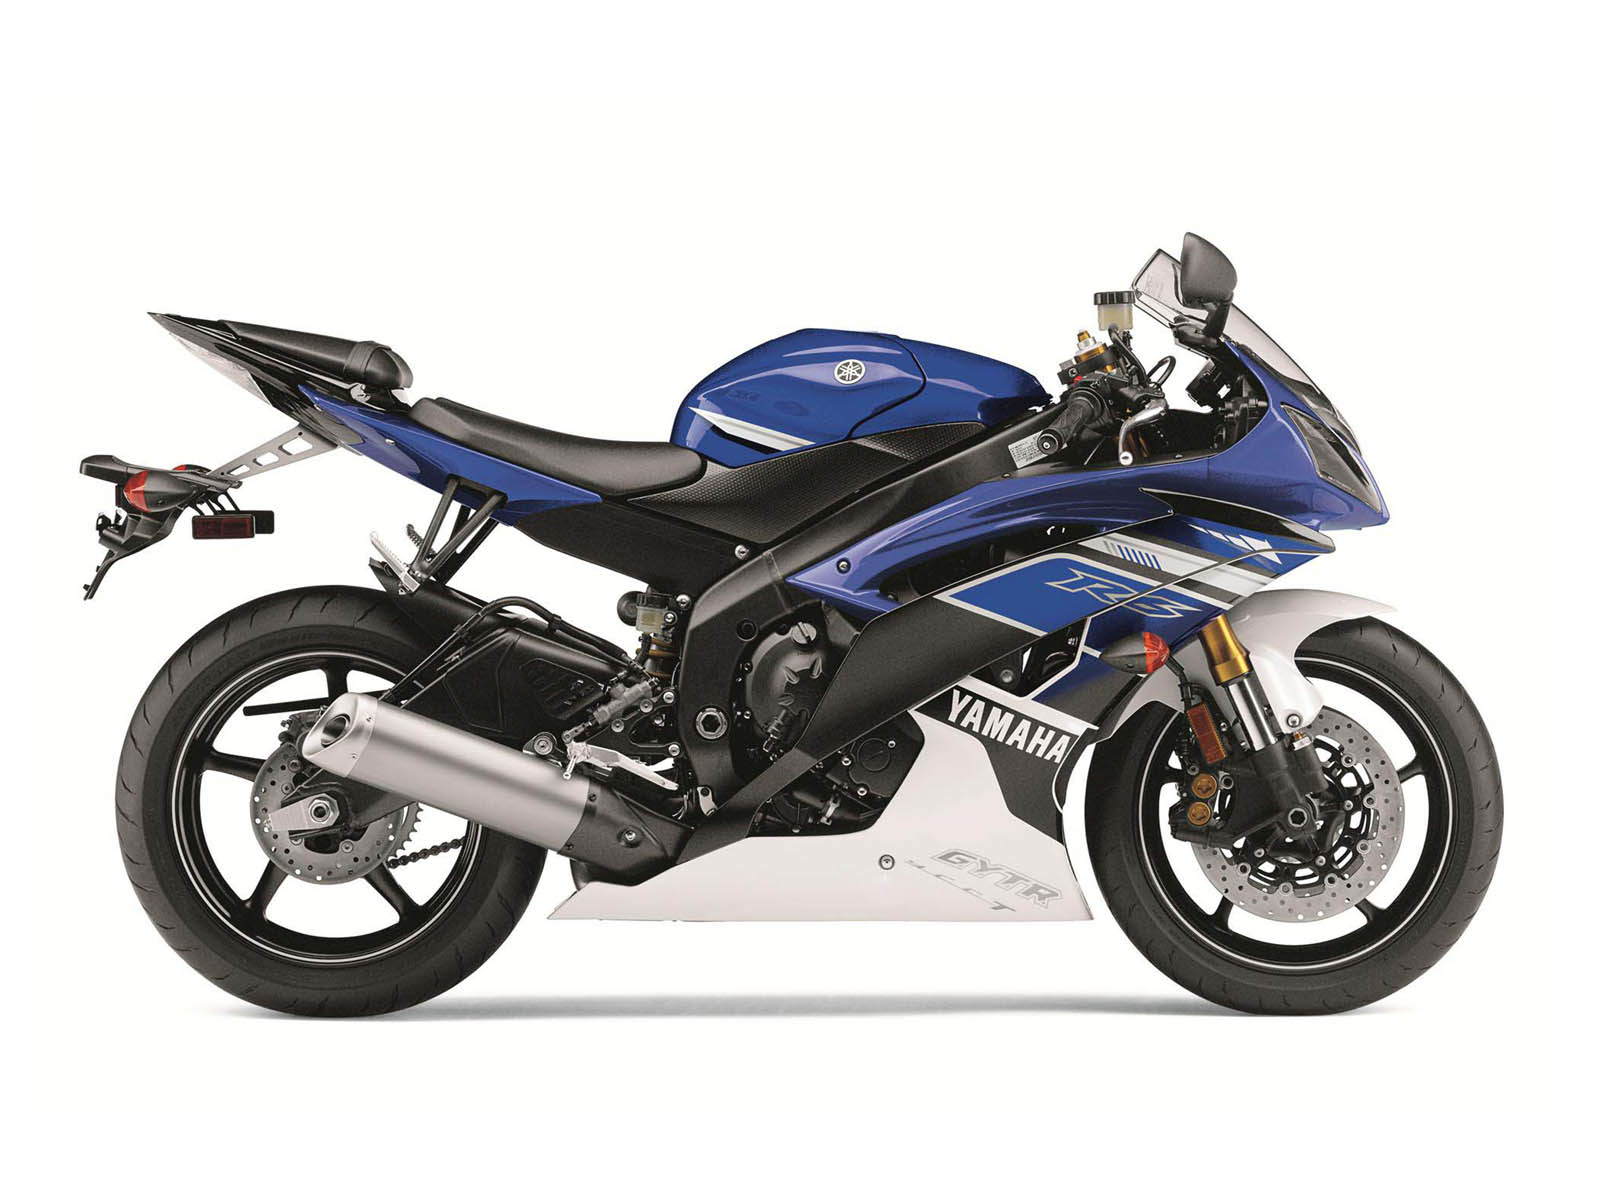 wallpapers Yamaha YZF R6 Bike Wallpapers 1600x1200